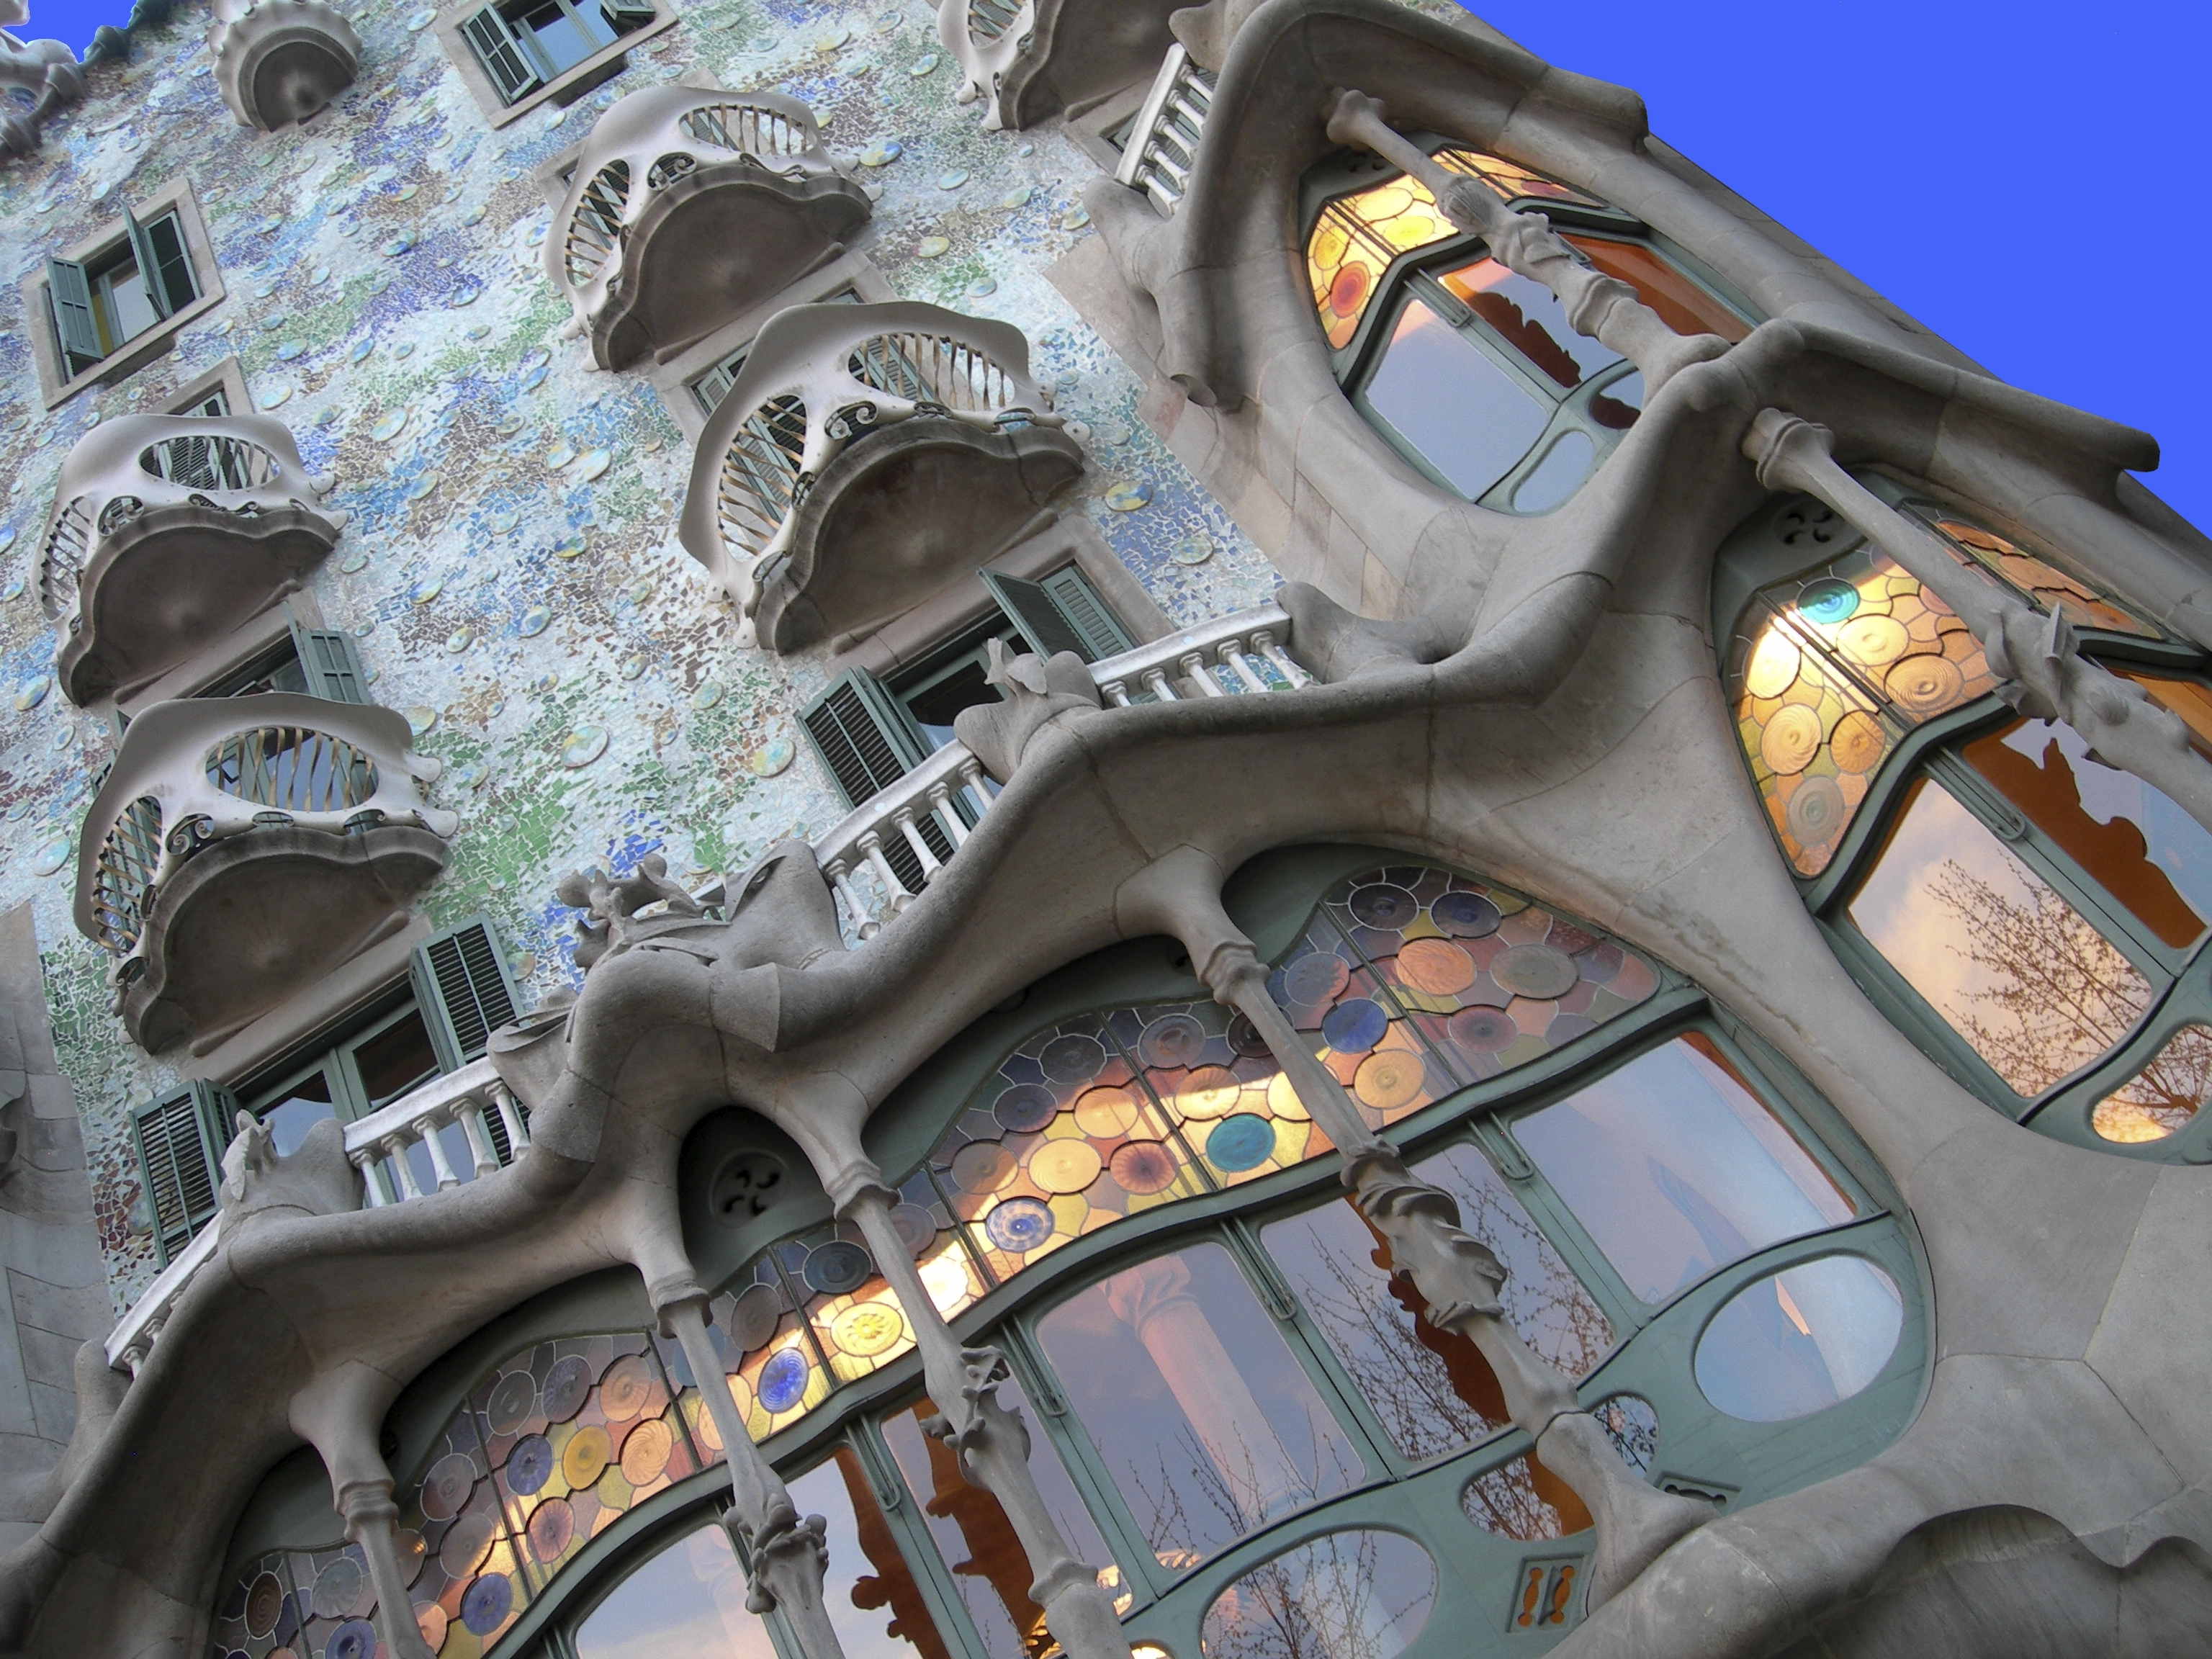 Art and Architecture. Antonio Gaudi, Casa Battlo, Spain